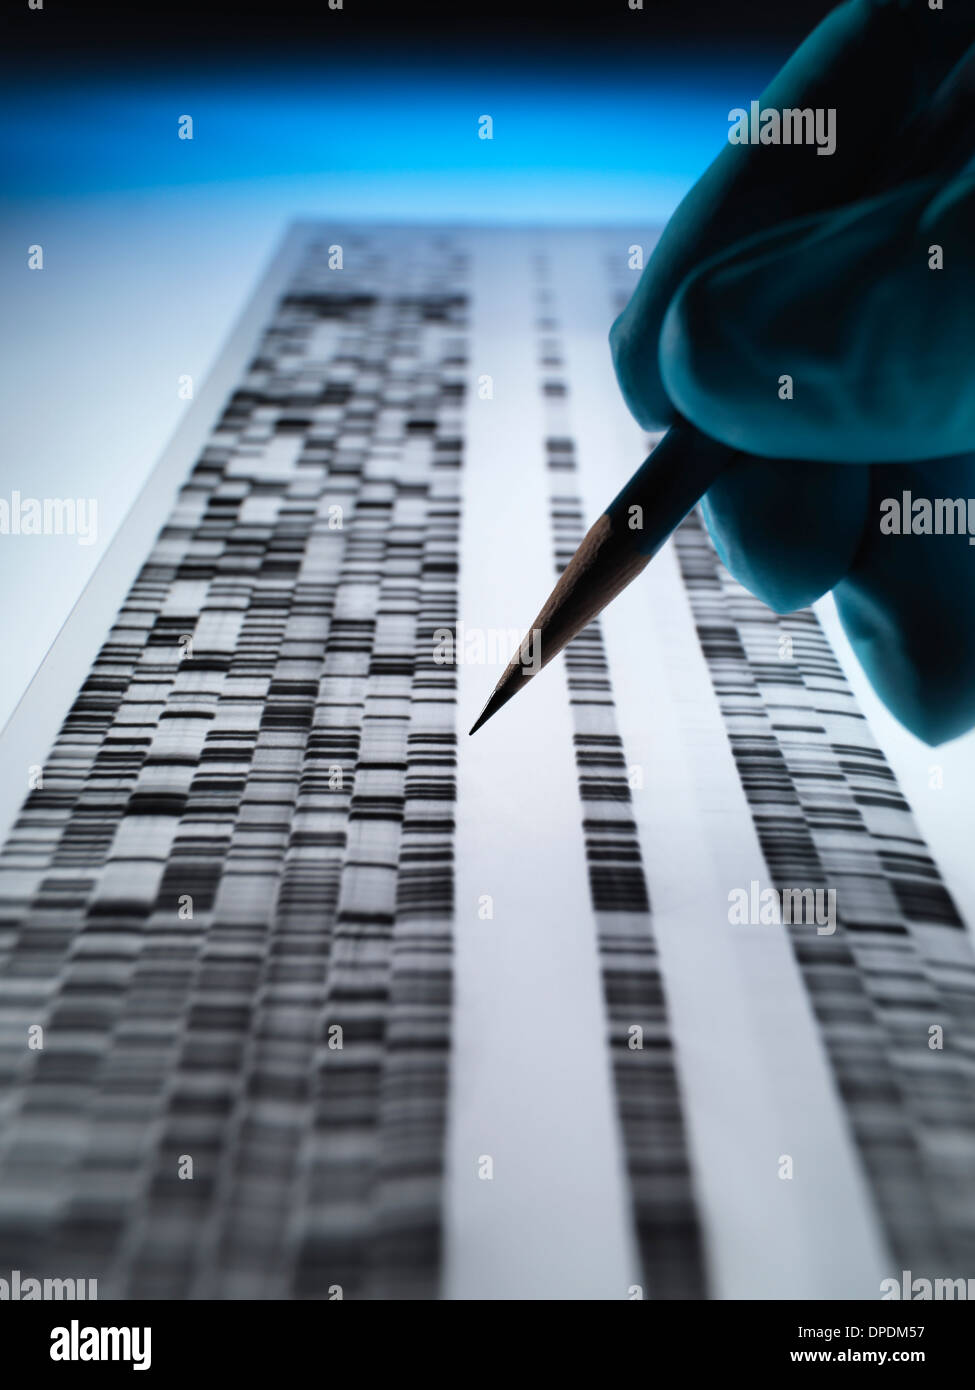 Scientist viewing DNA gel used in genetics, forensic, pharma research, biotechnology and biomedical science - Stock Image